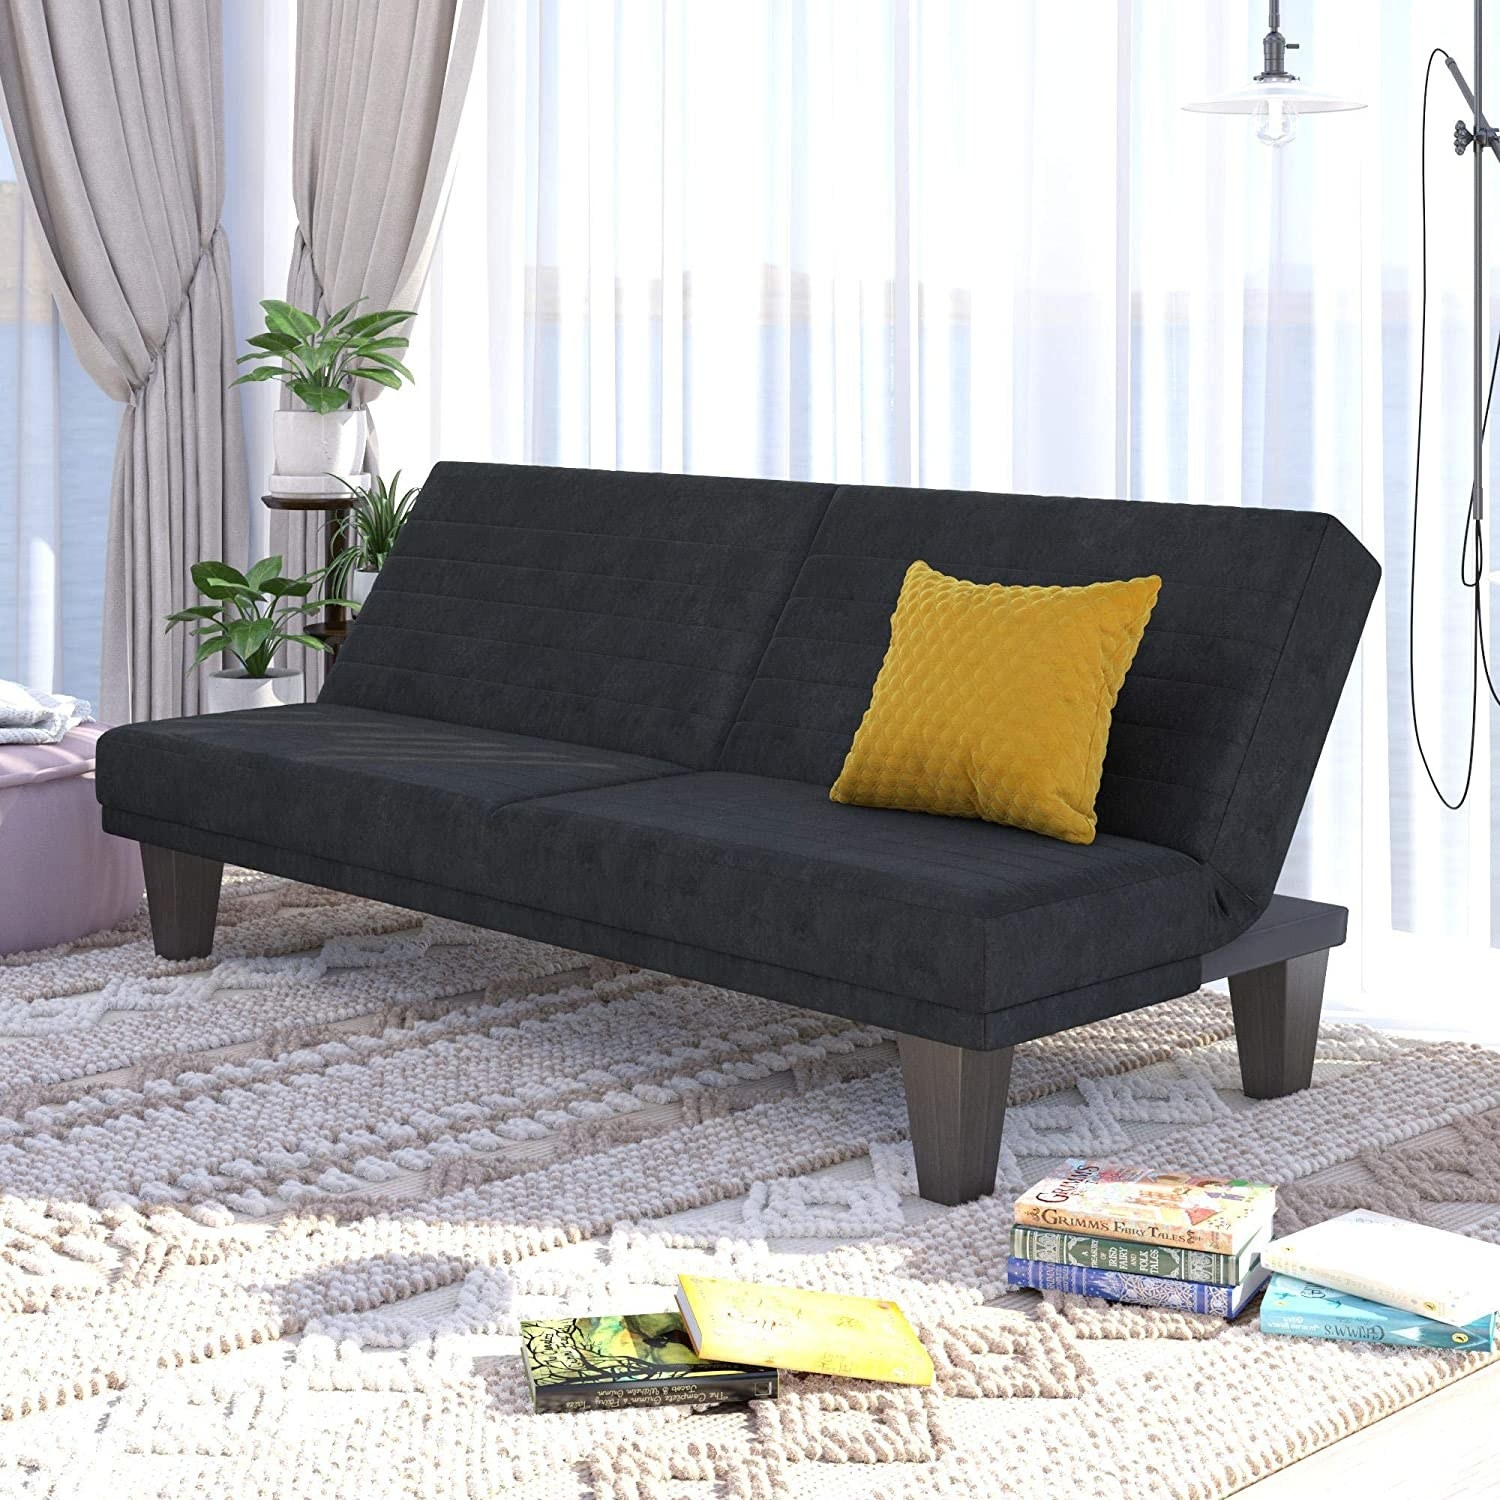 a black angled futon couch with a yellow pillow on it